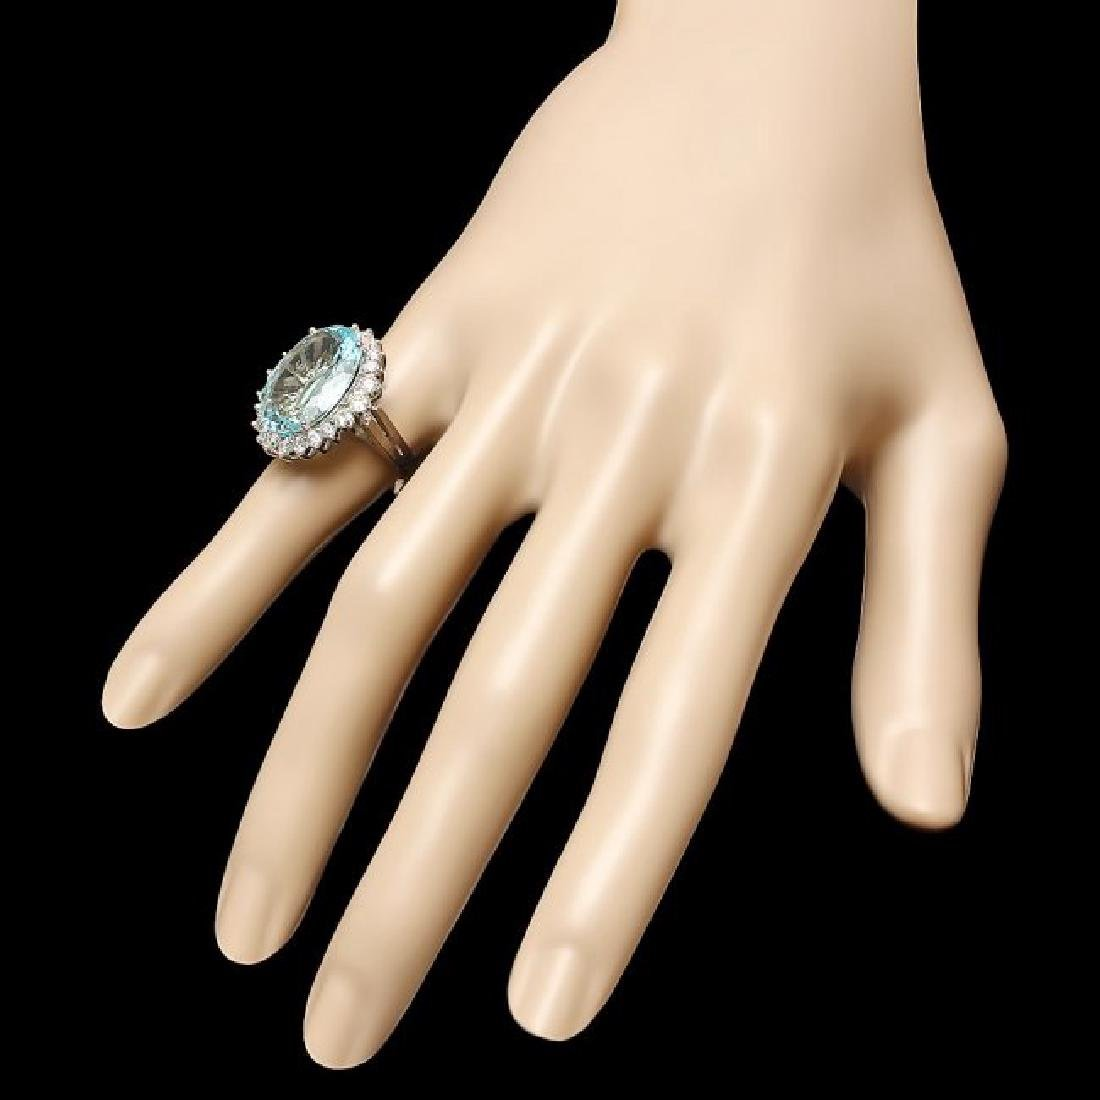 14k Gold 9.00ct Aquamarine 1.30ct Diamond Ring - 3